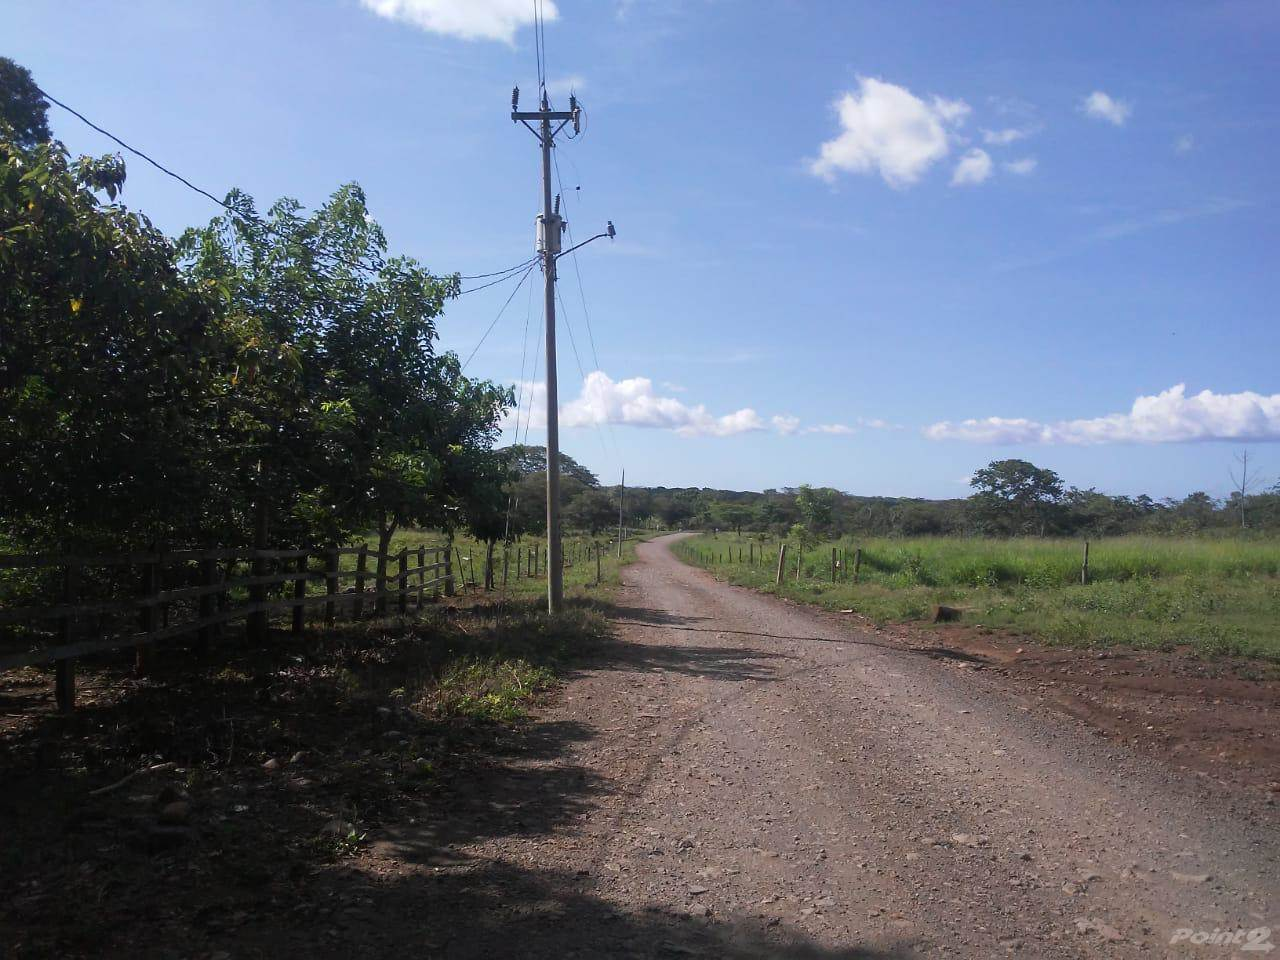 Farms & Ranches for sale Papagayo Gulf, Costa Rica Large Property in Blue Zone of Papagayo - 350 Hectares